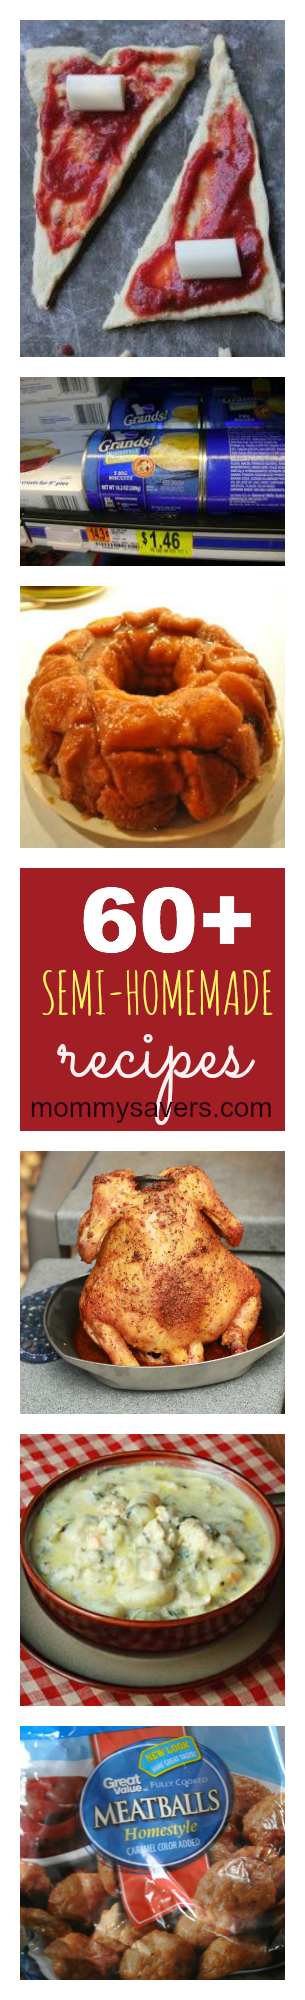 60+ Semi-Homemade Recipes